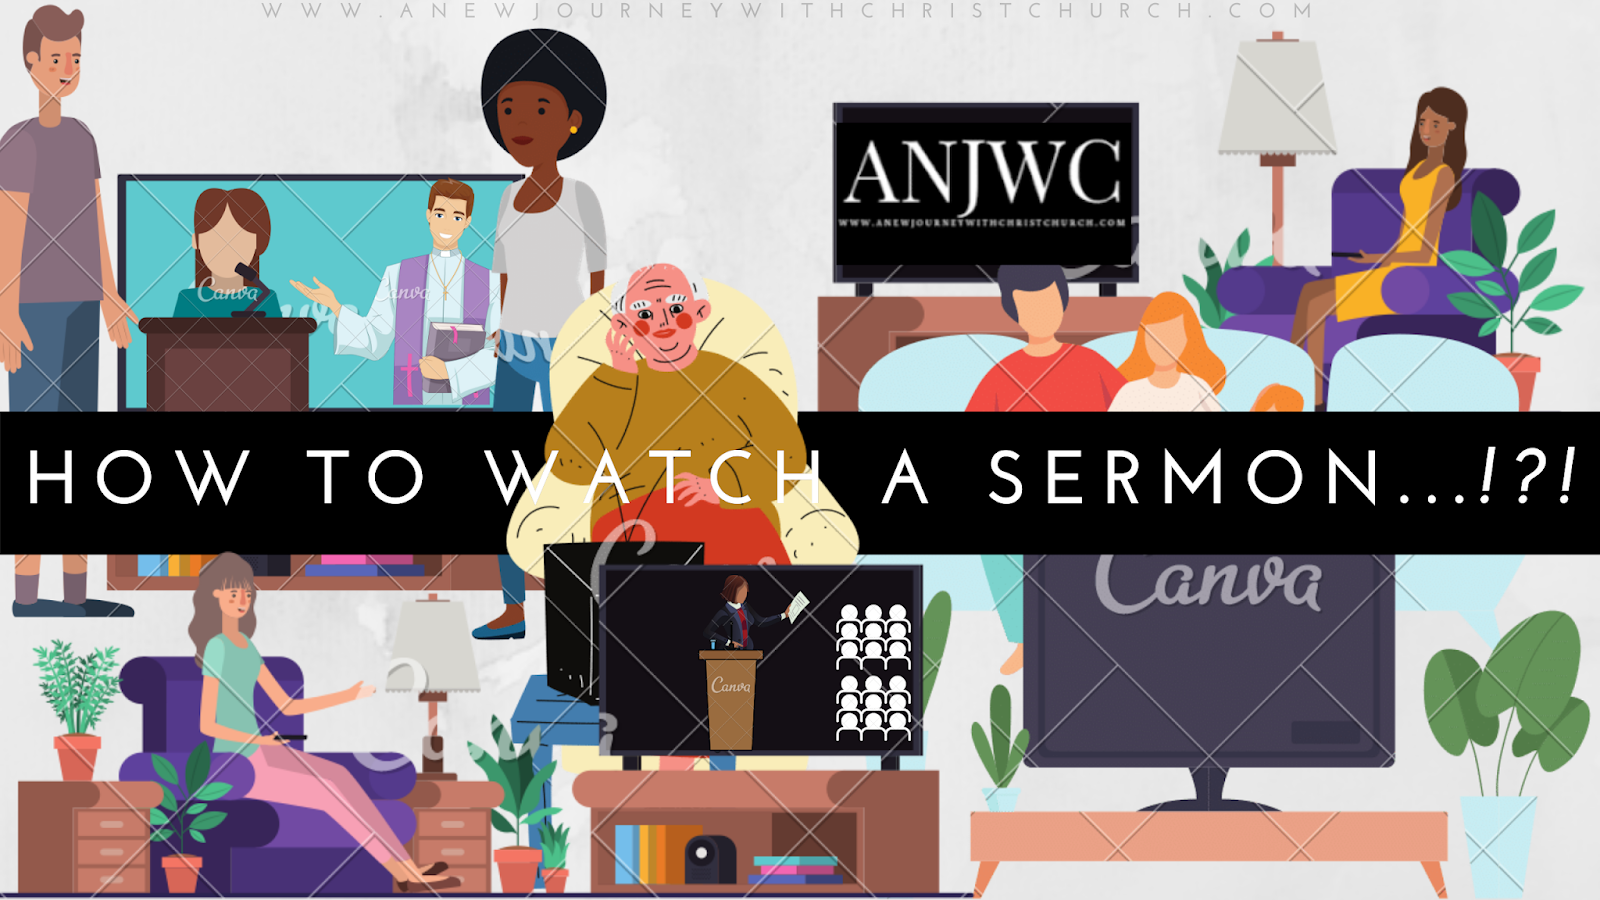 How do we listen to (watch) sermons?